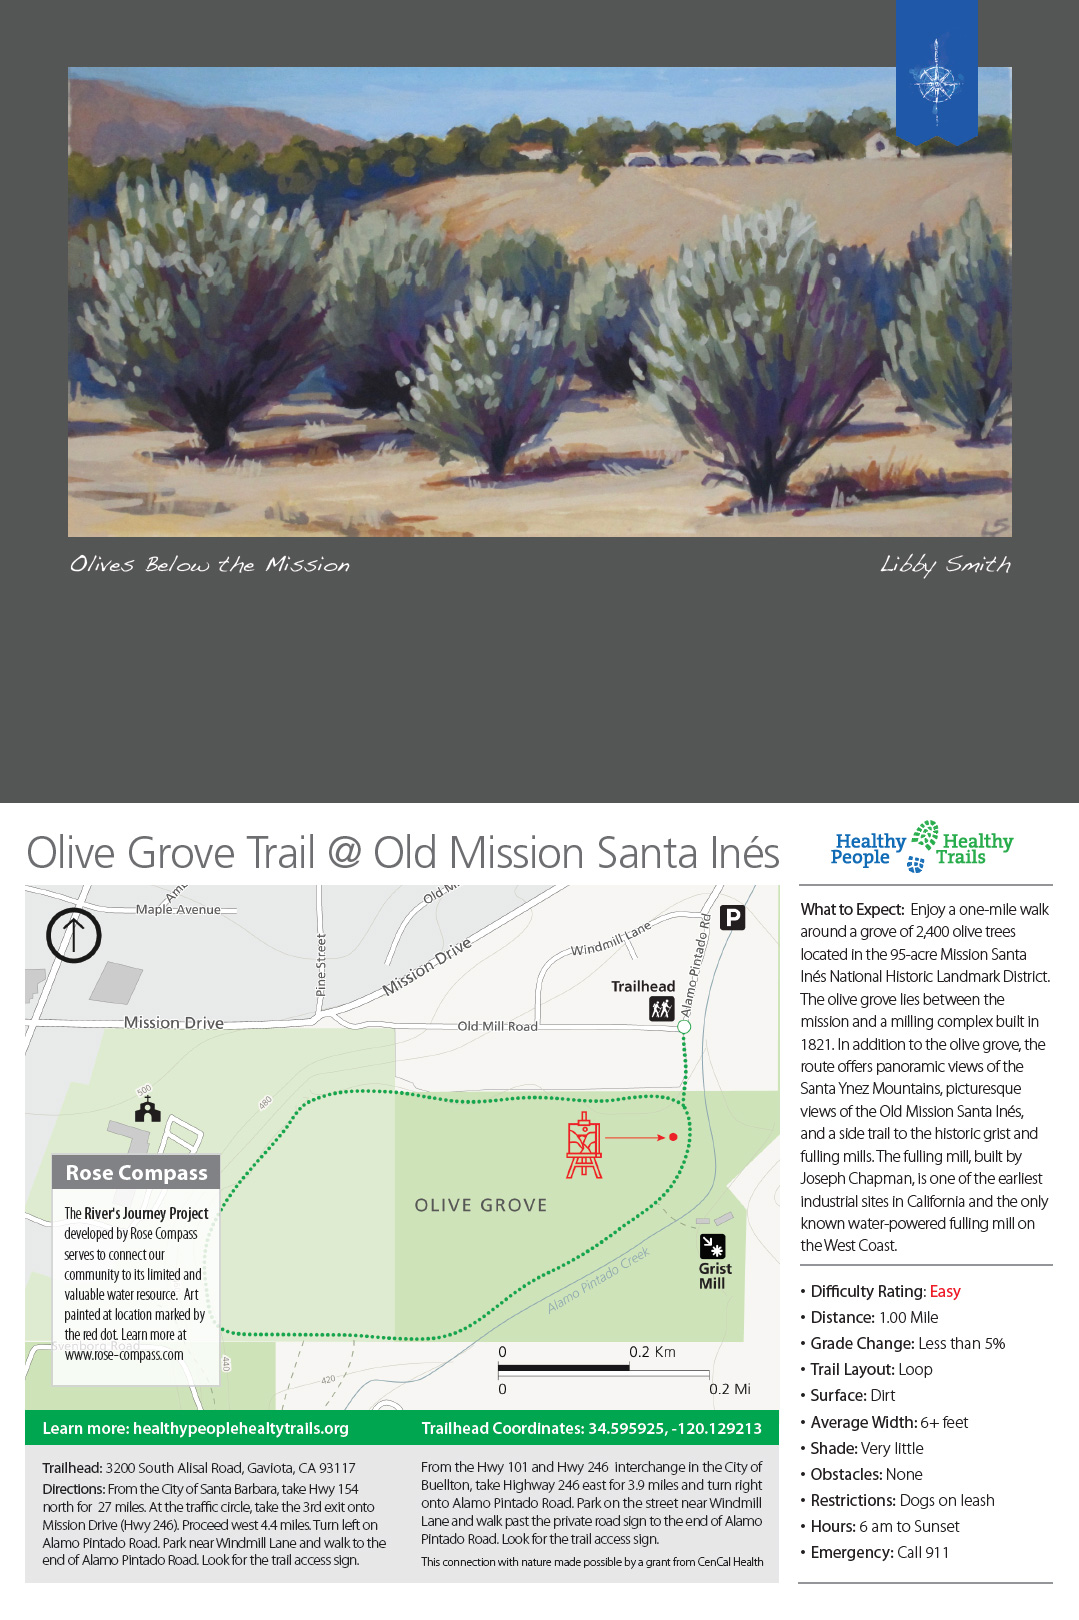 Olive Grove at Santa Ines Mission